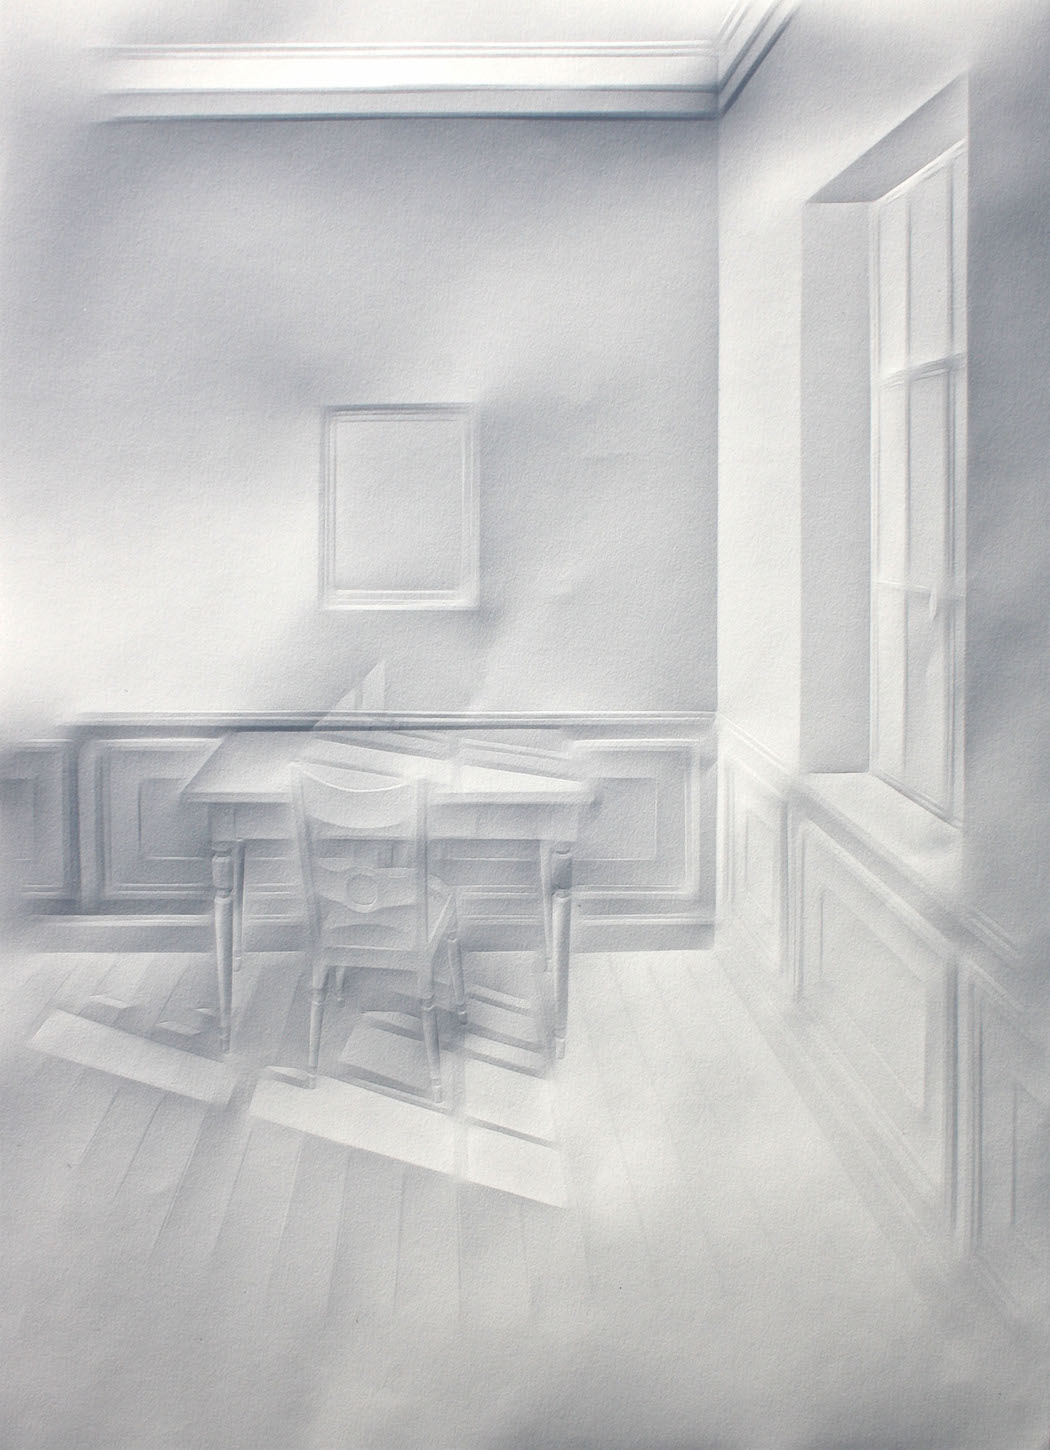 simonschubert(light on desk1), 2015, 50cm x 35cm